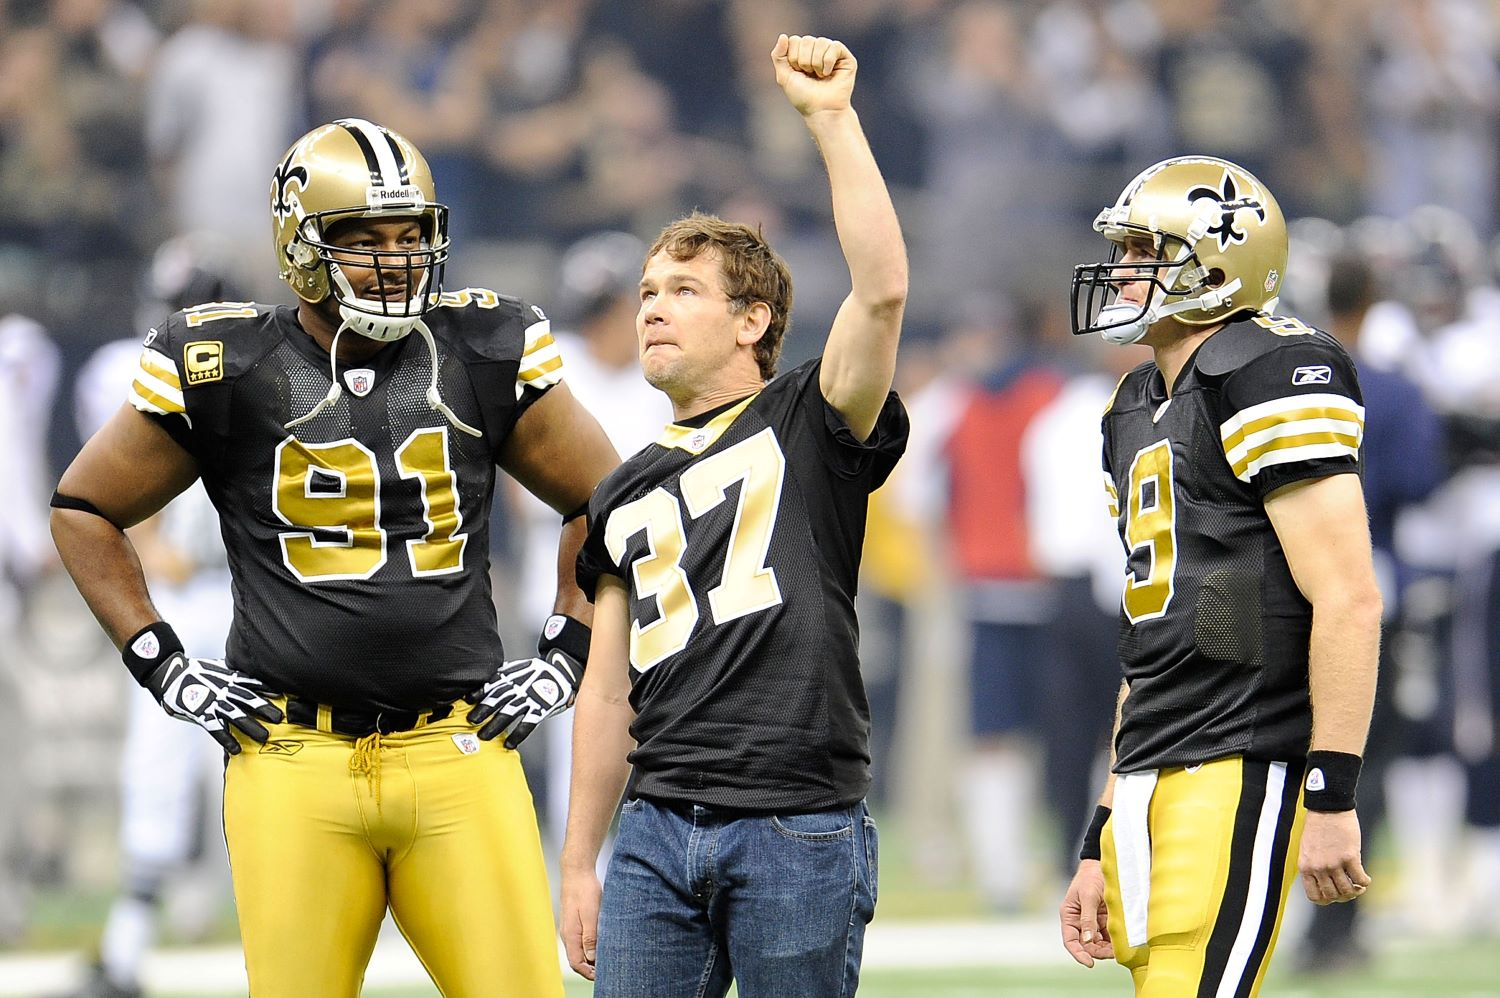 Drew Brees used a jump rope to win a free sushi dinner from Saints legend Steve Gleason.